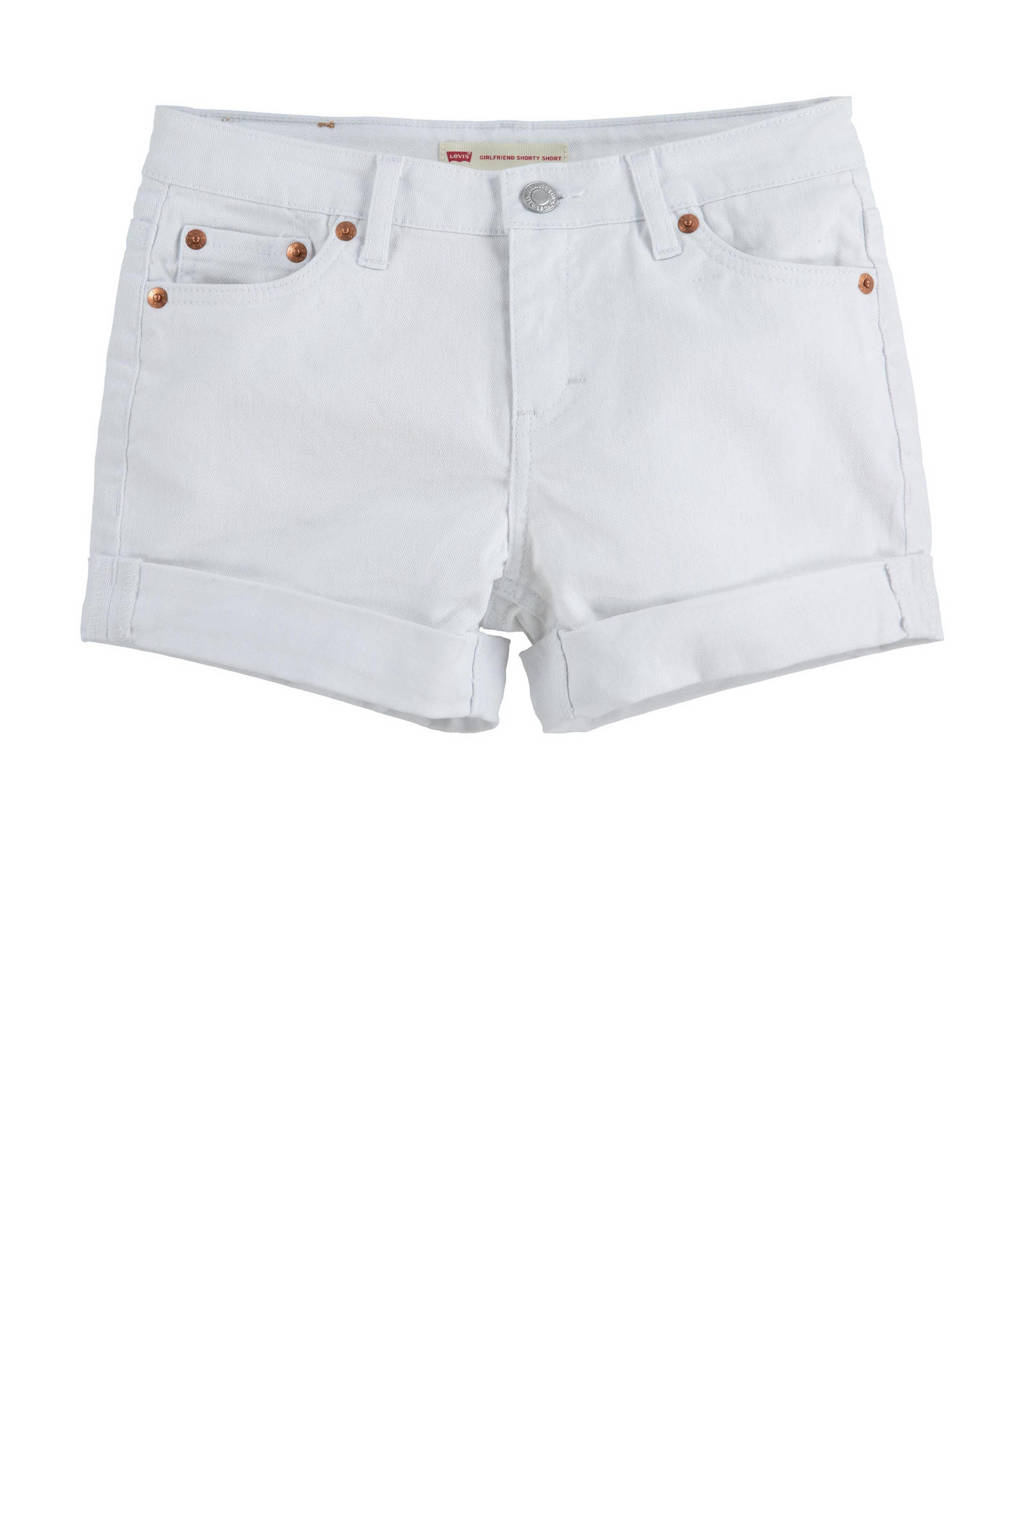 Levi's Kids Girlfriend loose fit jeans short white001, WHITE001